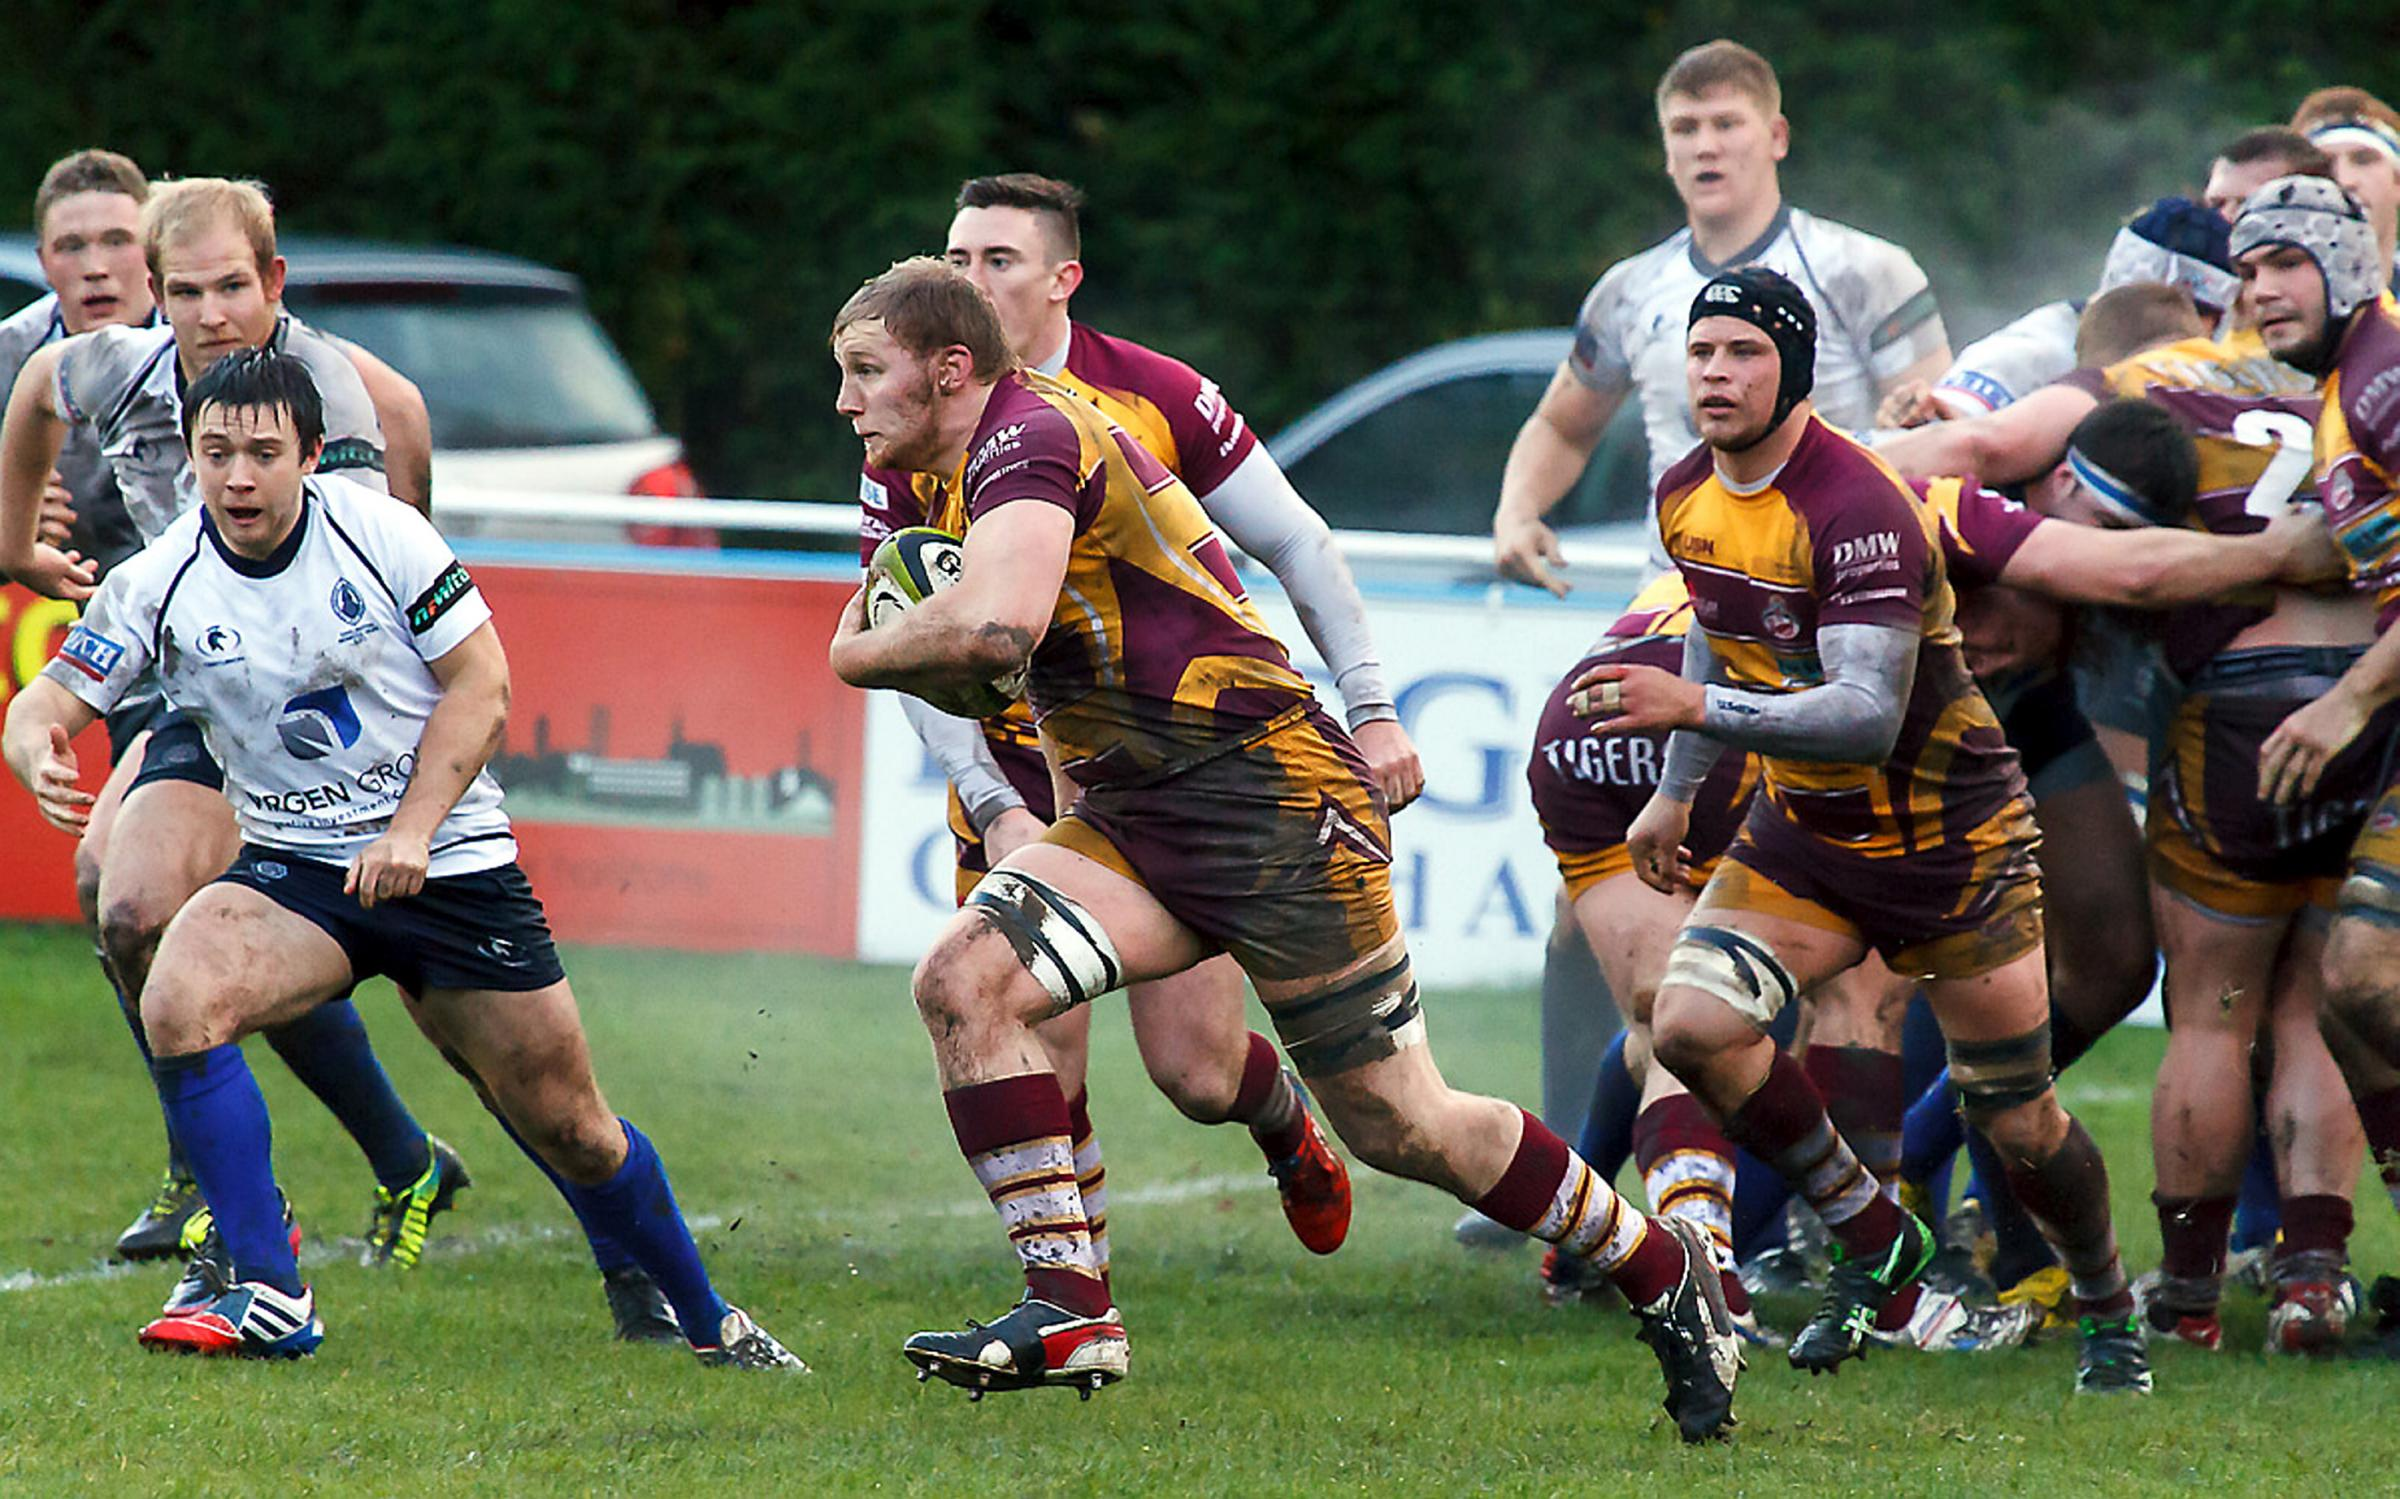 Sedgley's Matt Lamprey, centre with the ball, scored his team's sole try